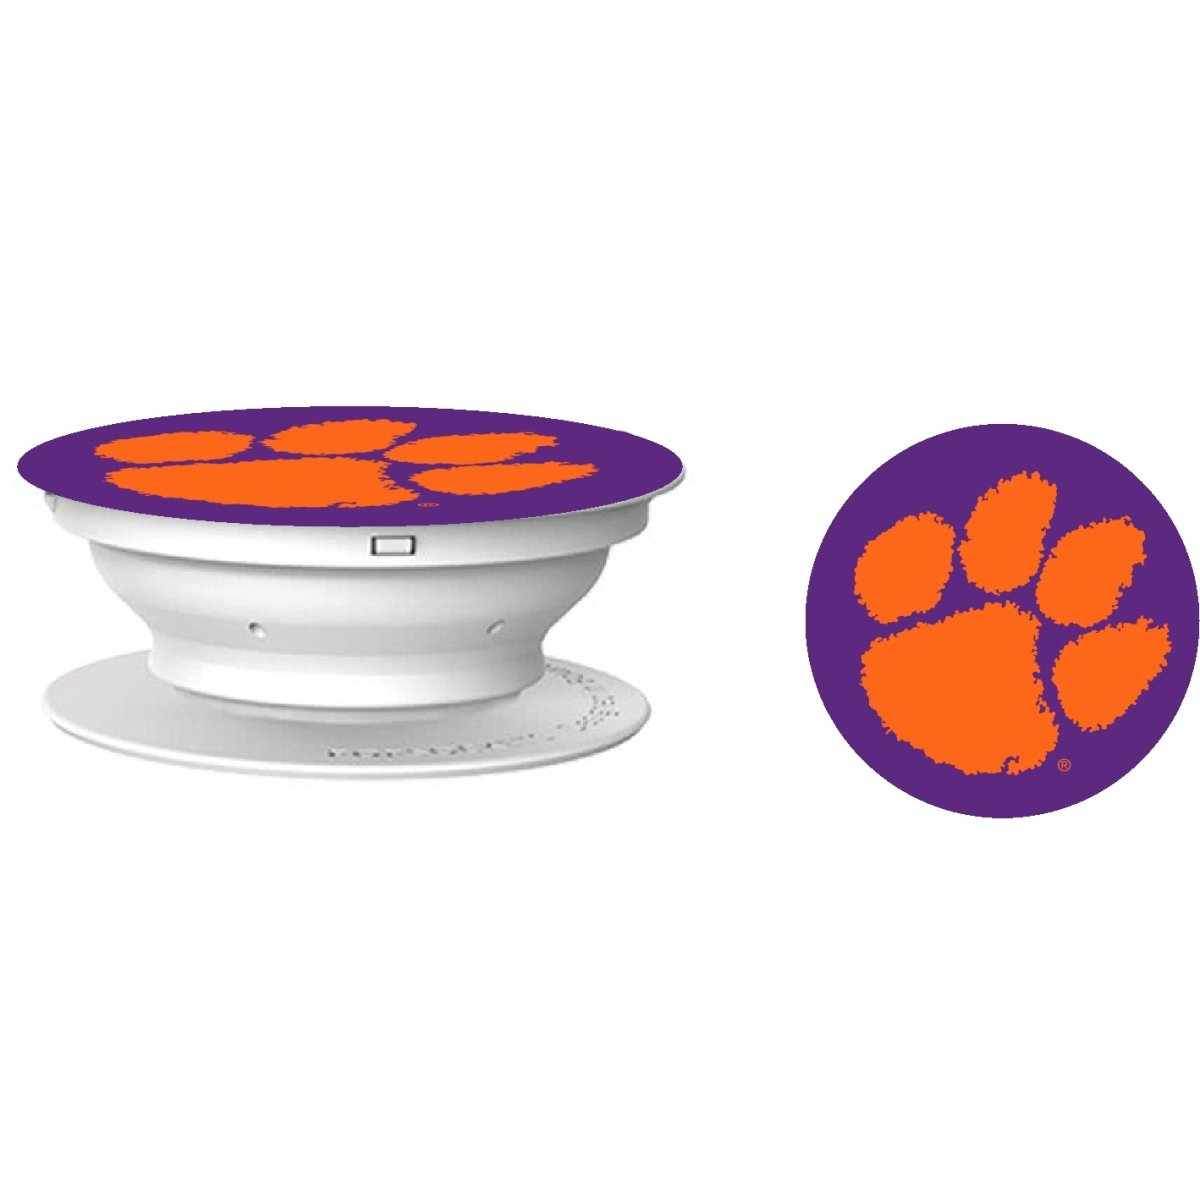 Clemson Tigers Popsocket - Mr. Knickerbocker